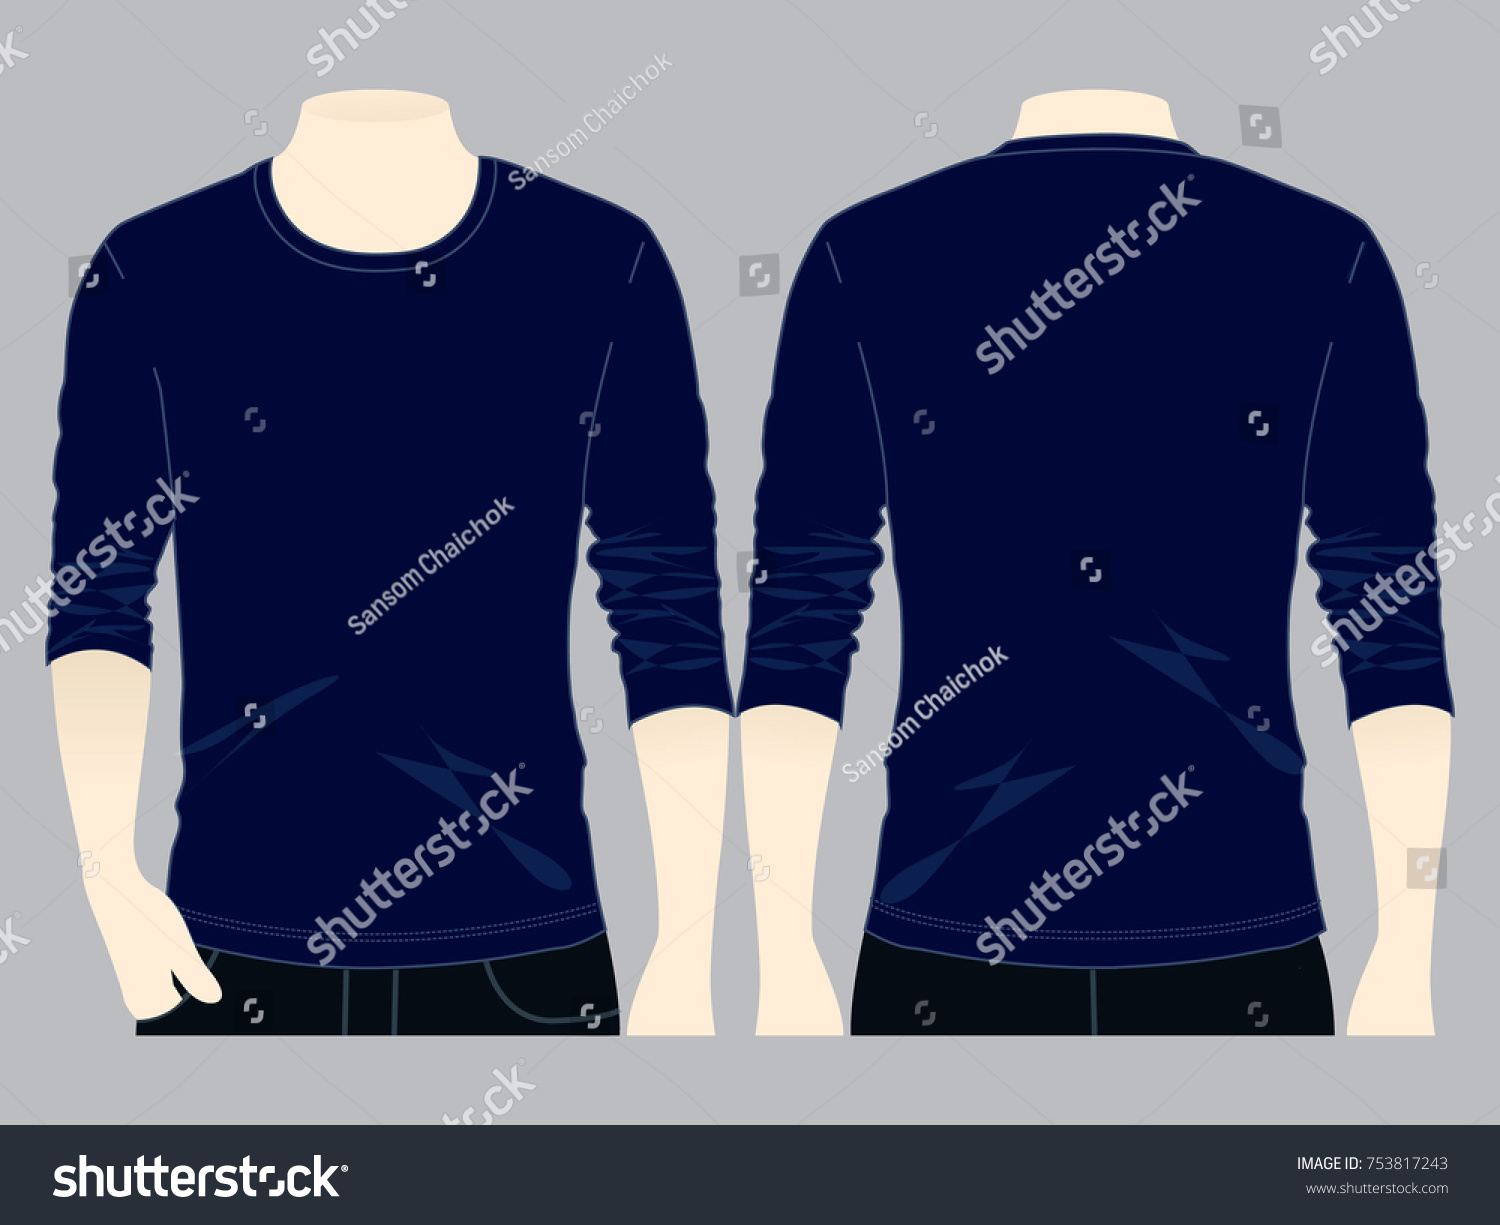 Navy Blue Long Sleeve T Shirt For Template FrontBack And Side Views